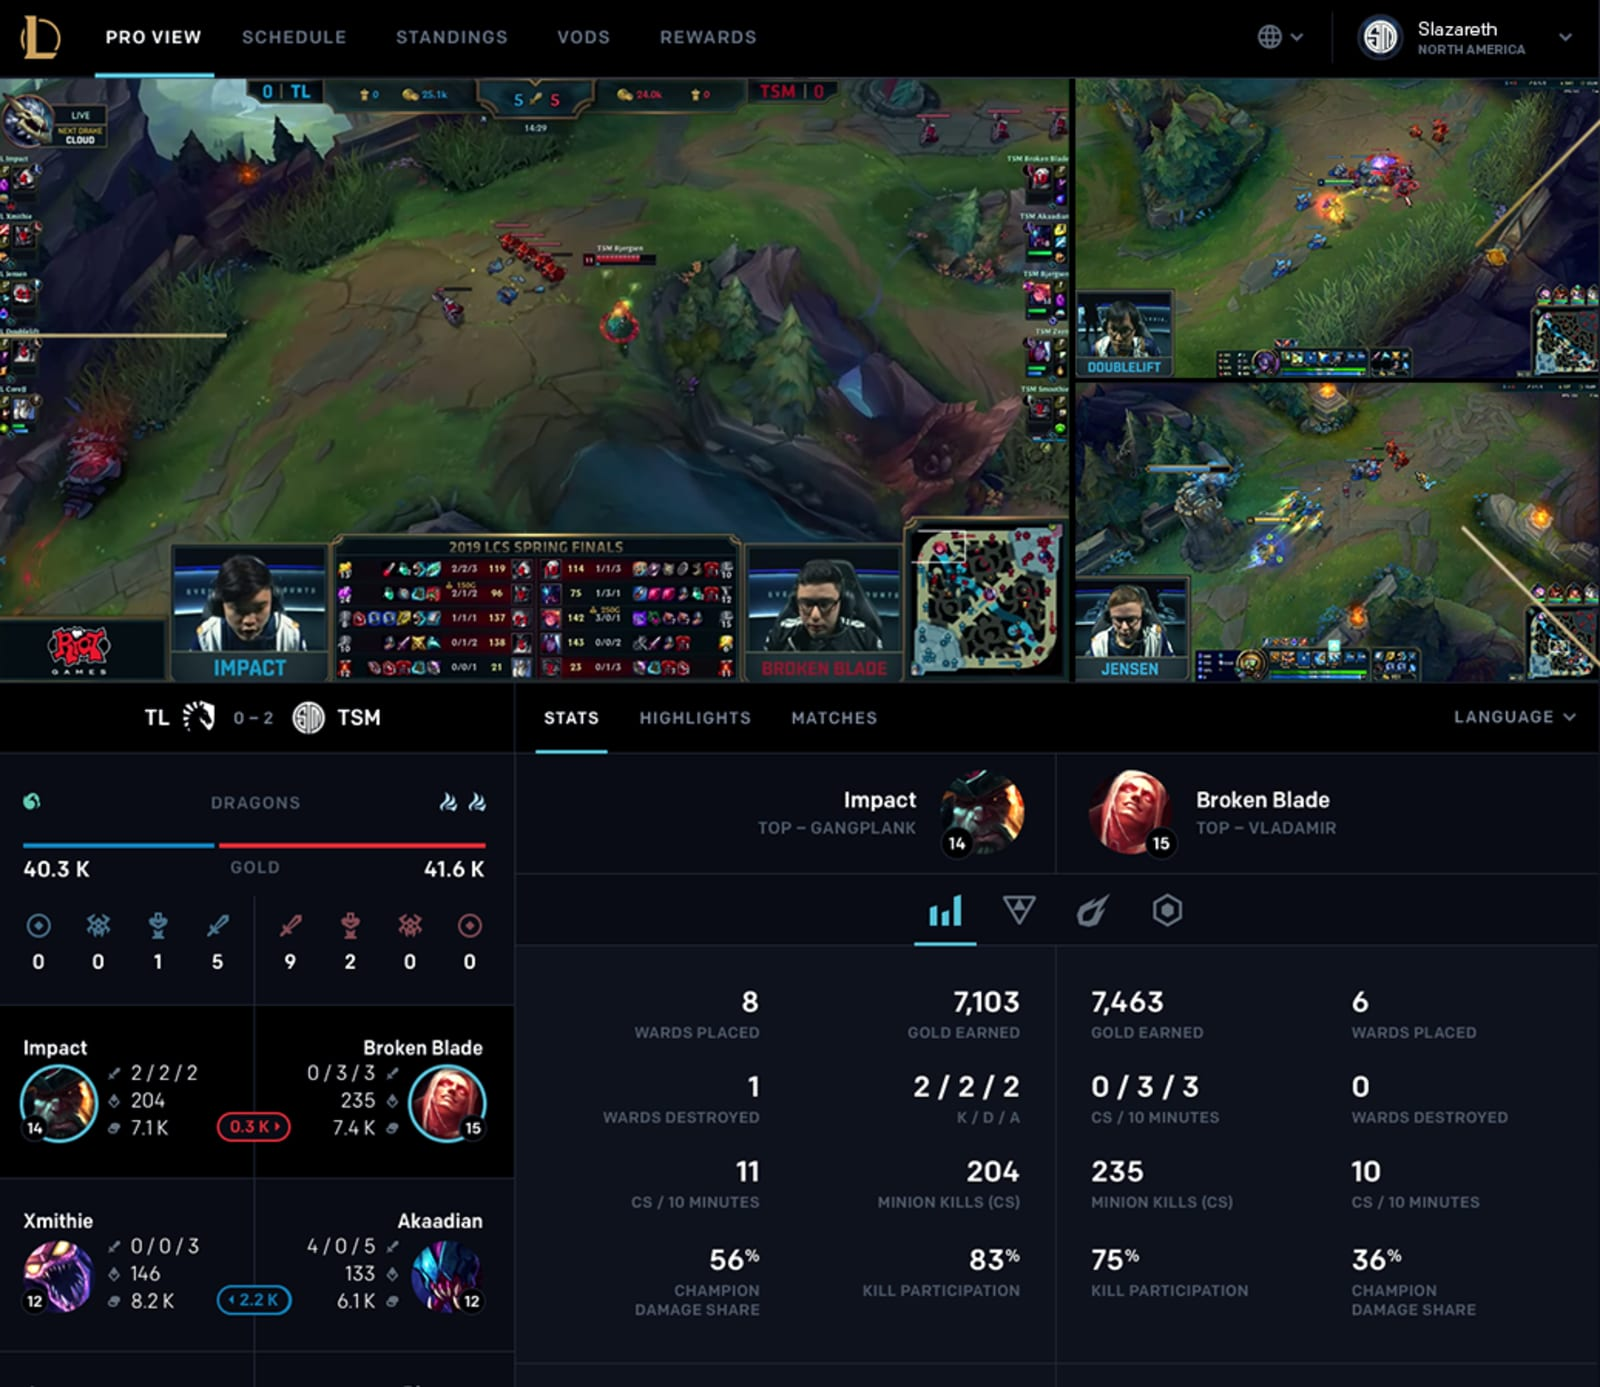 'League of Legends' Pro View